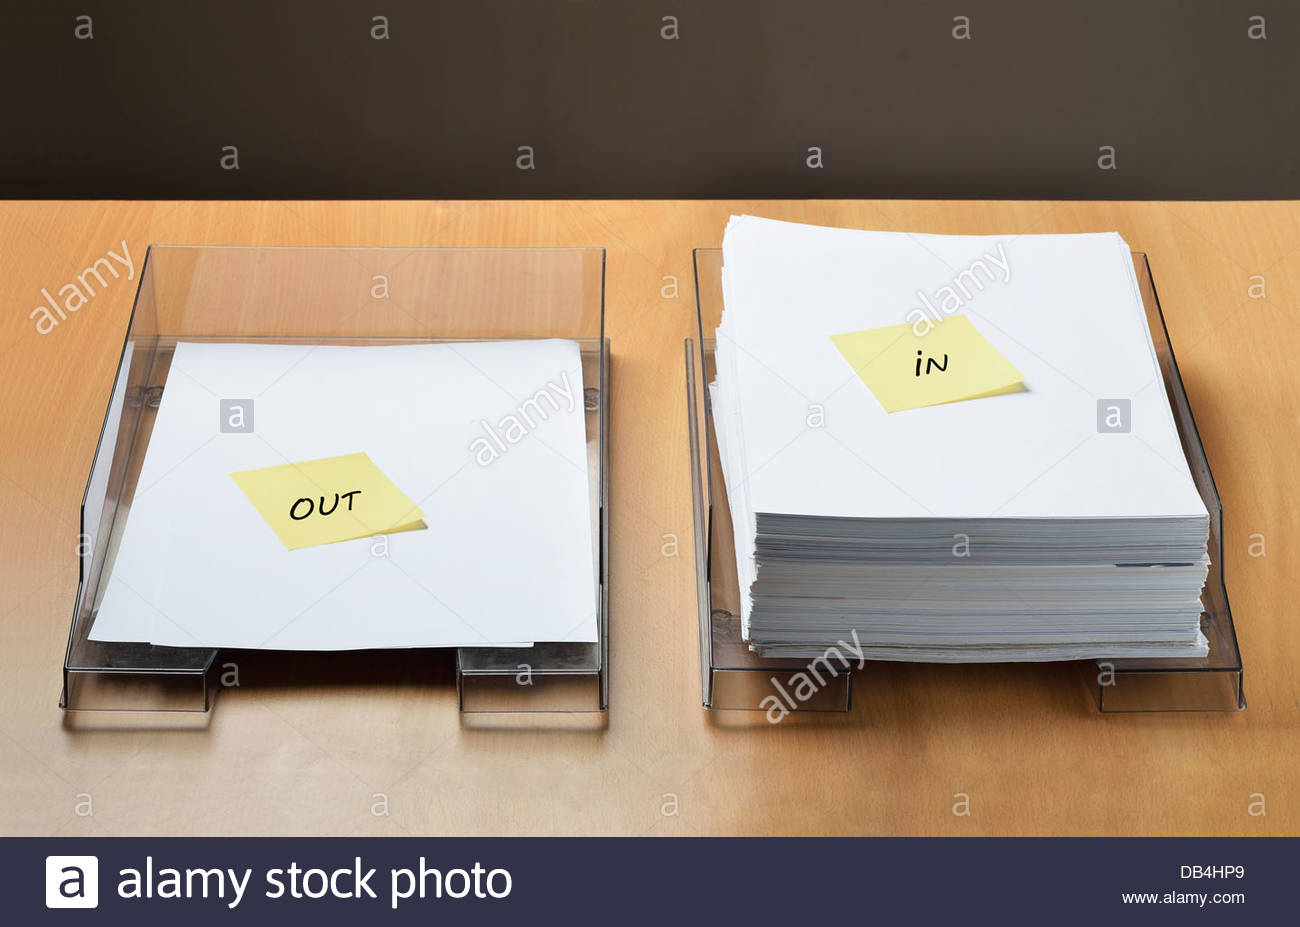 Two paper trays, one empty for the work already done and one full for the work to do - Stock Image